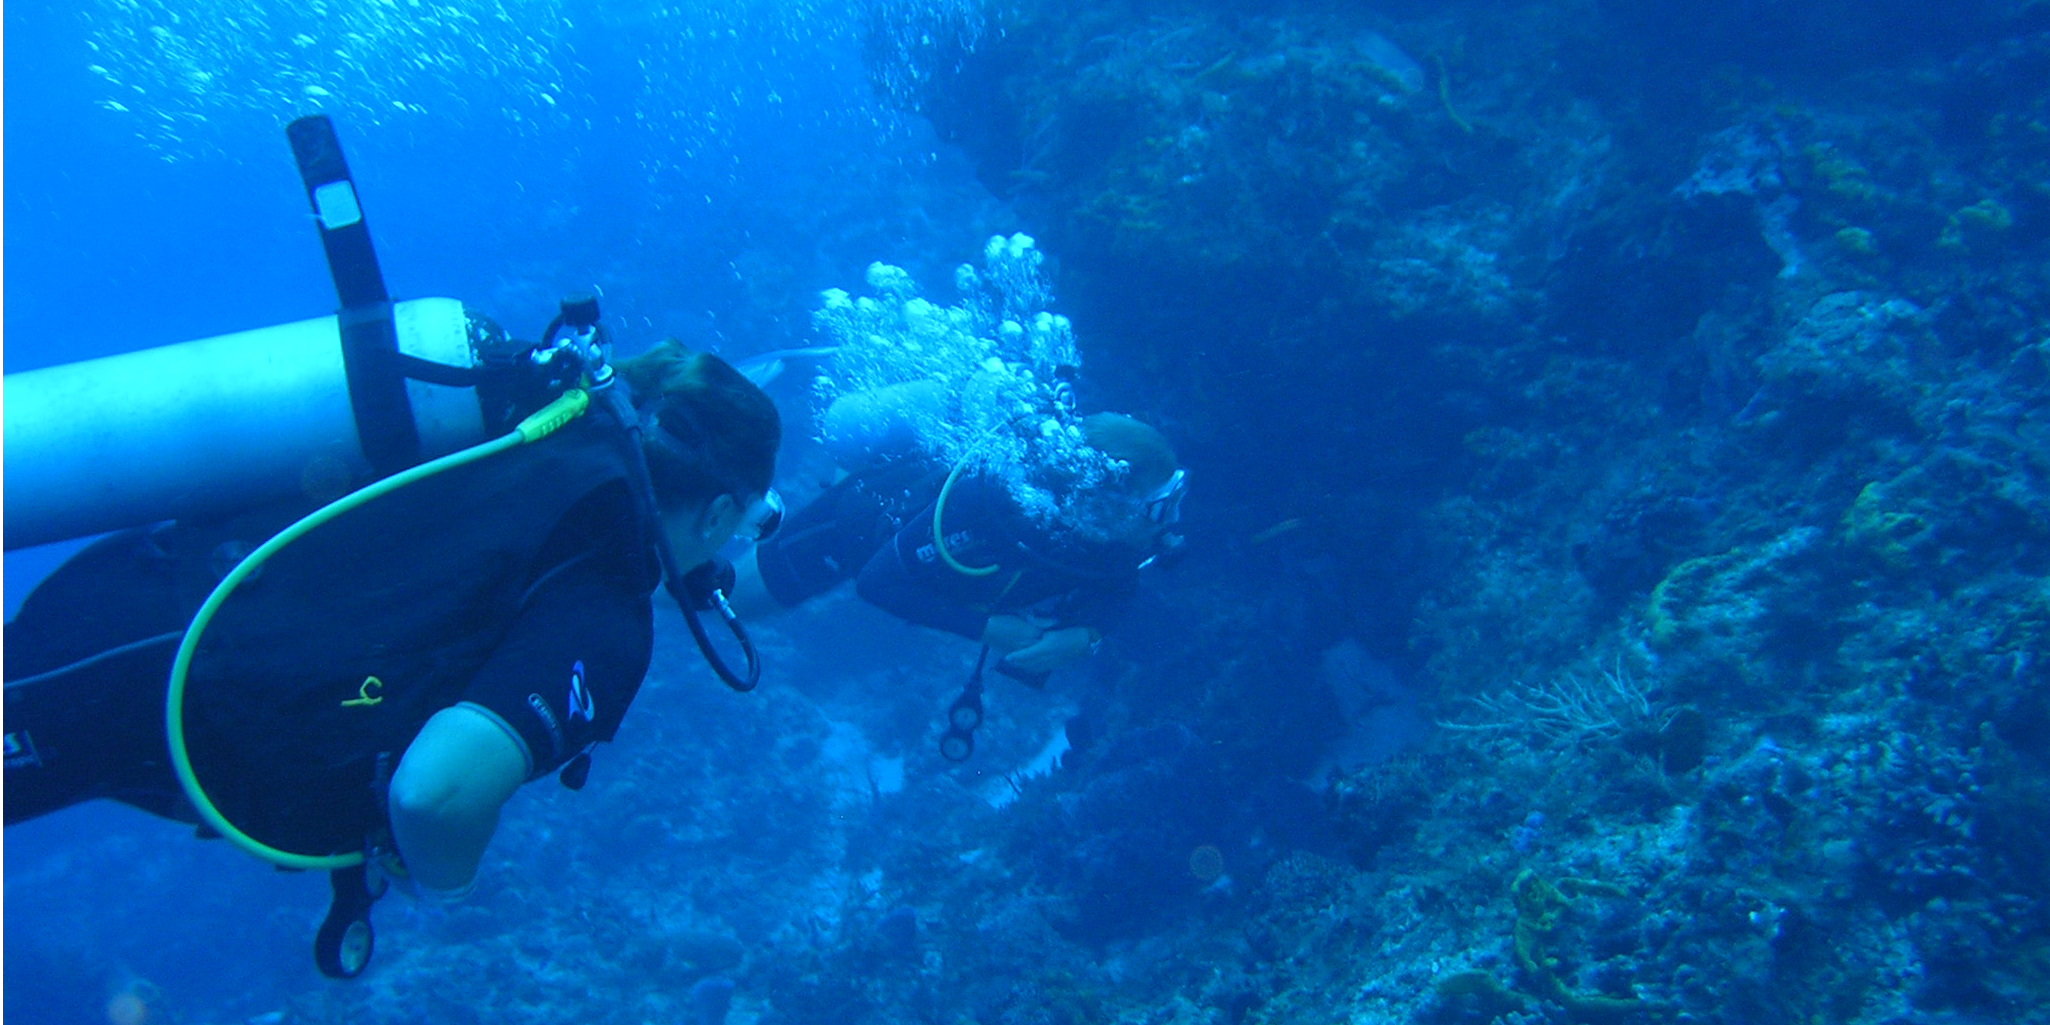 GVI participants collect marine conservation data off of the coast of Mexico. Data is used to support local authorities in policy to save the oceans.